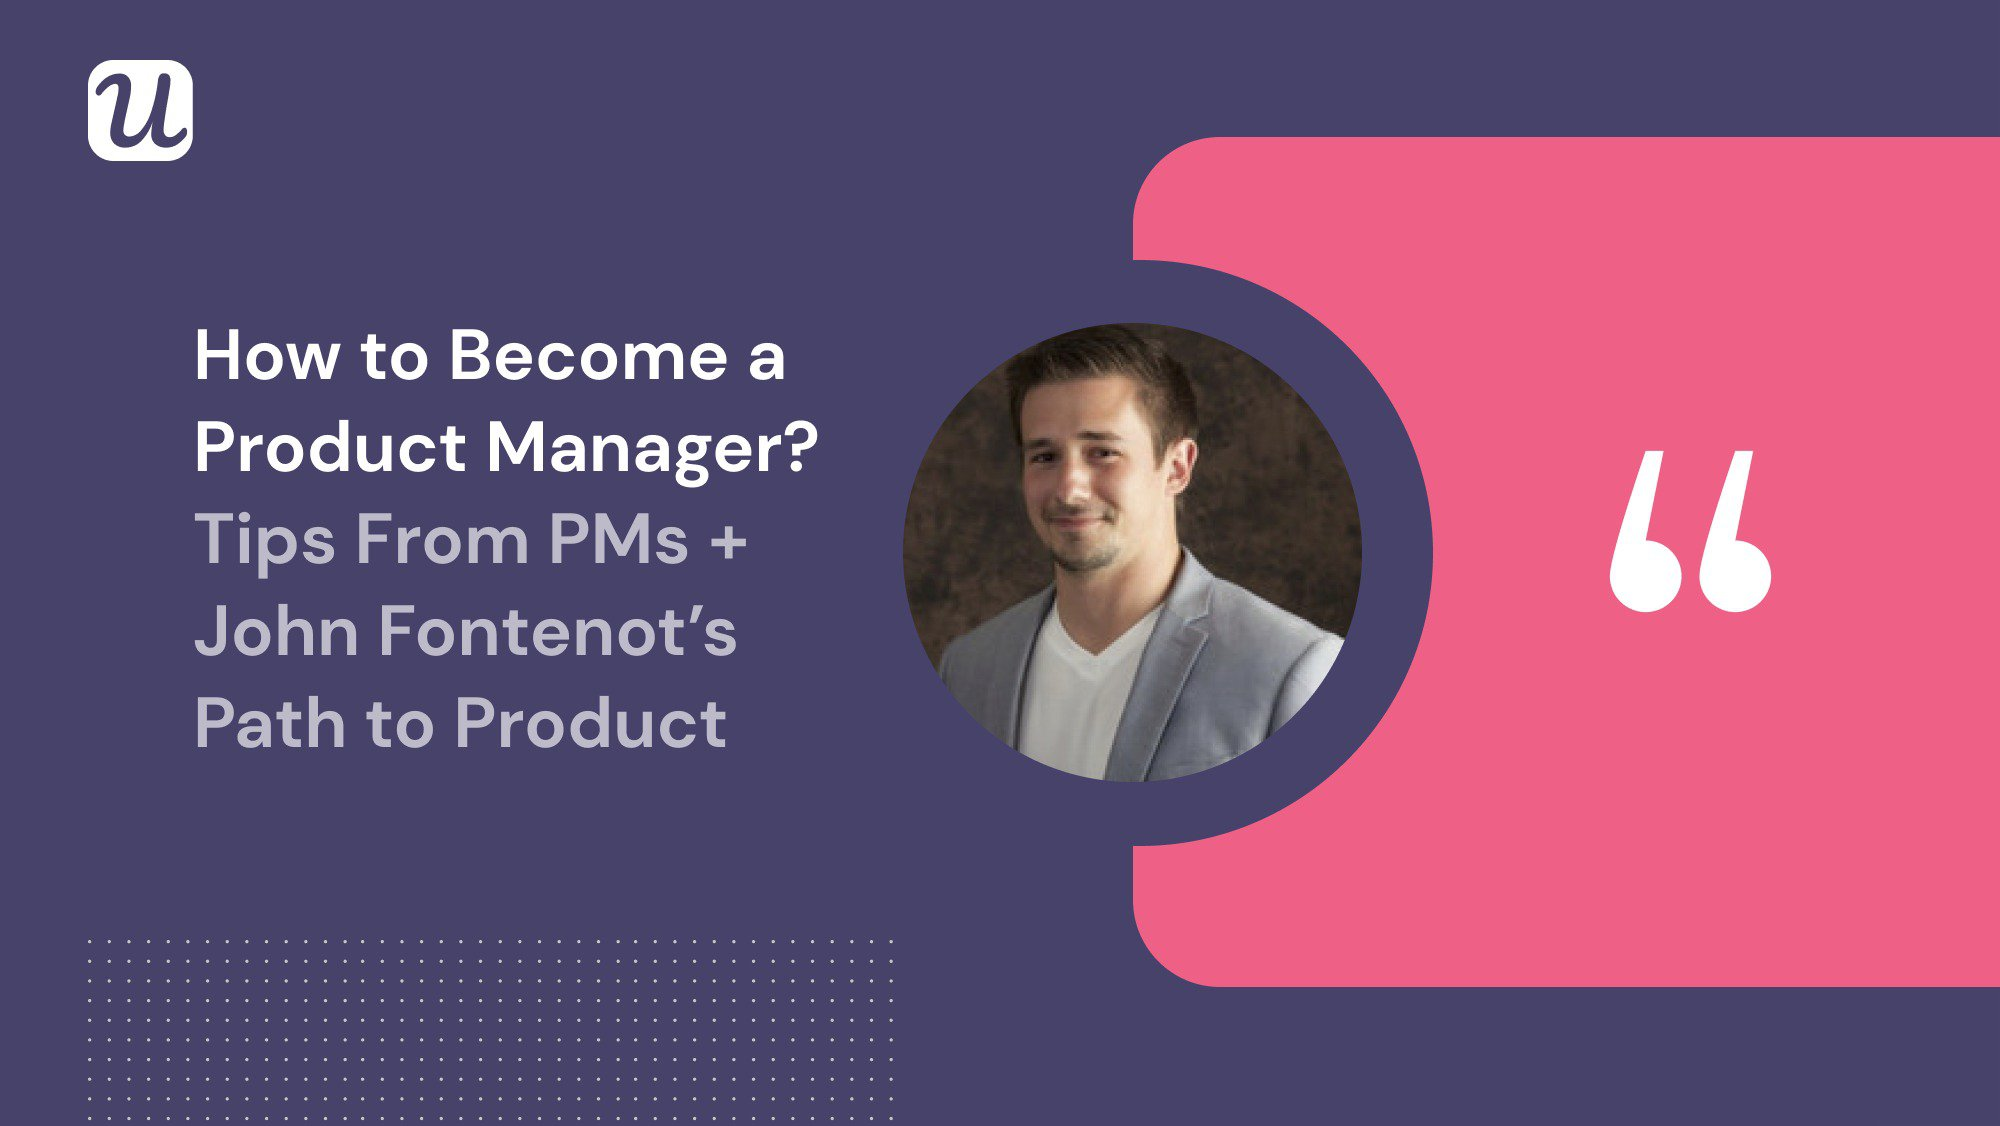 How to Become a Product Manager? 3 Tips From PMs + John Fontenot's Path to Product